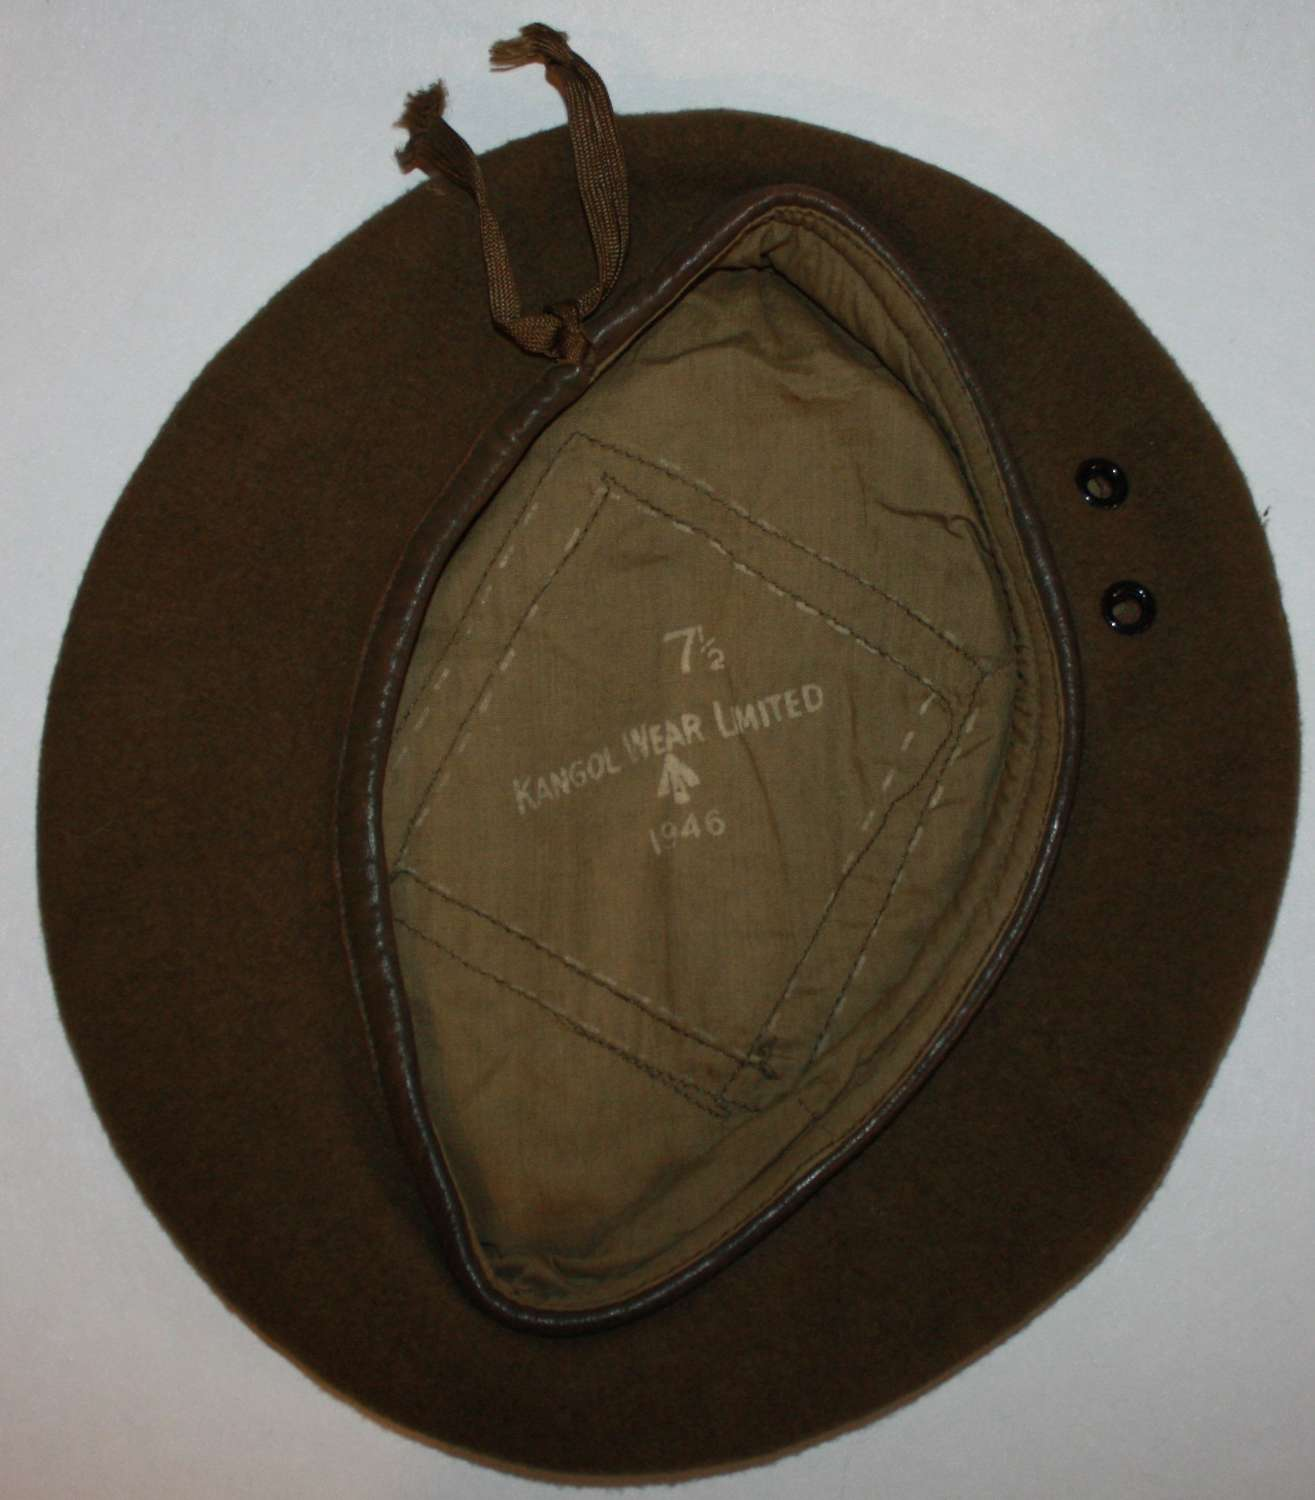 A GOOD 1946 DATED GREEN / BROWN BERET SIZE 7 1/2